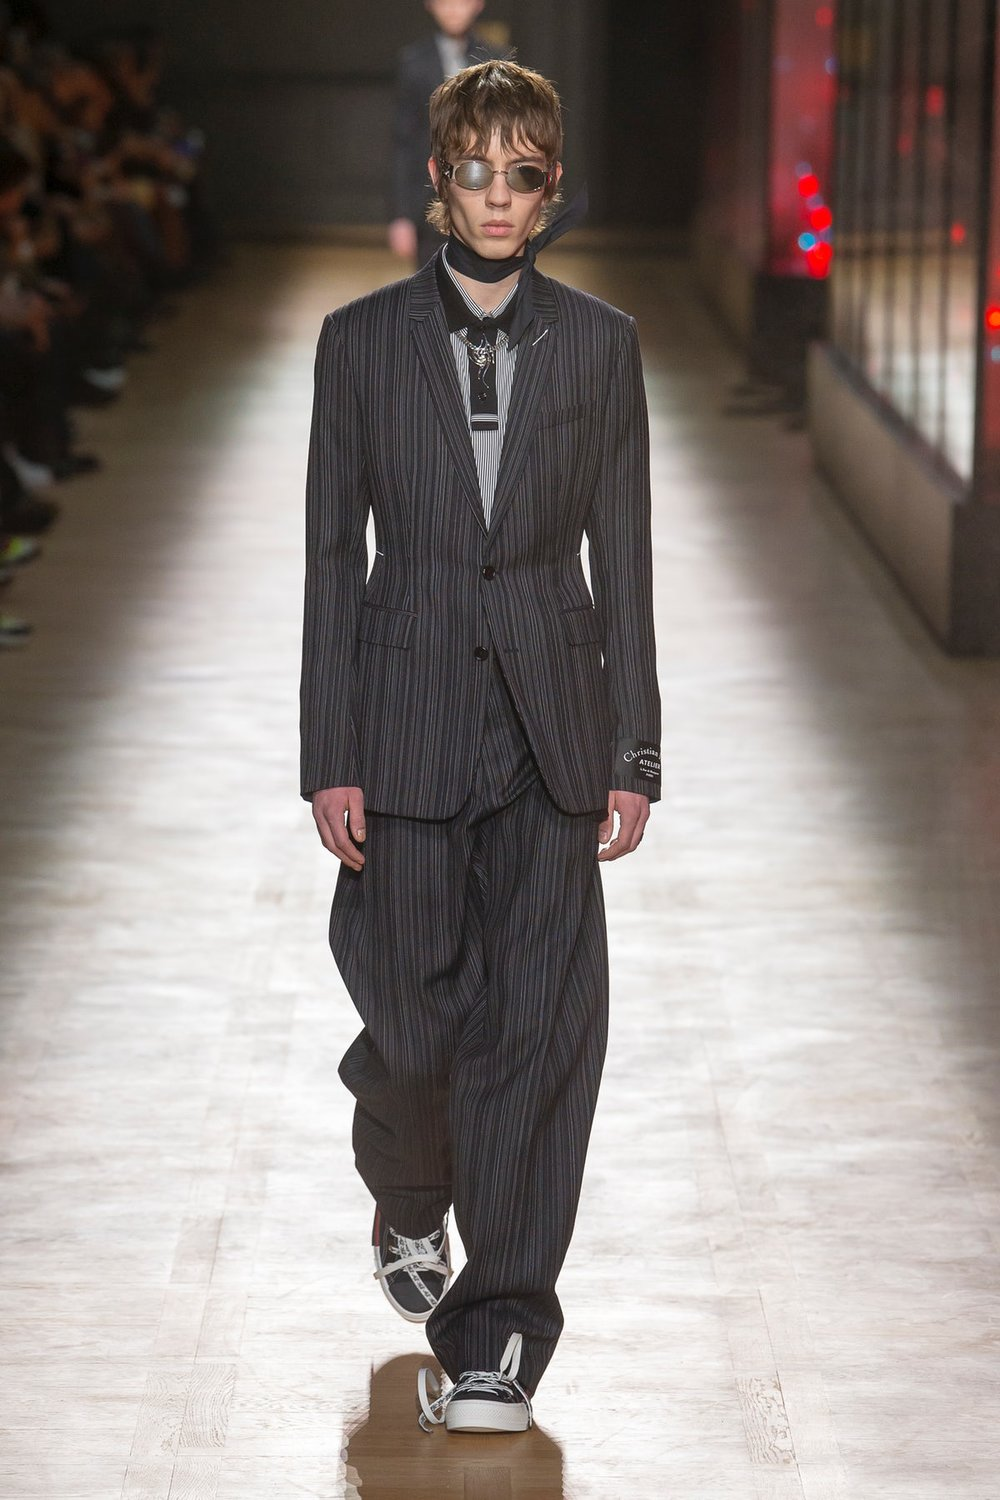 dior_homme_look_48_menswear_autumn_2018.jpeg